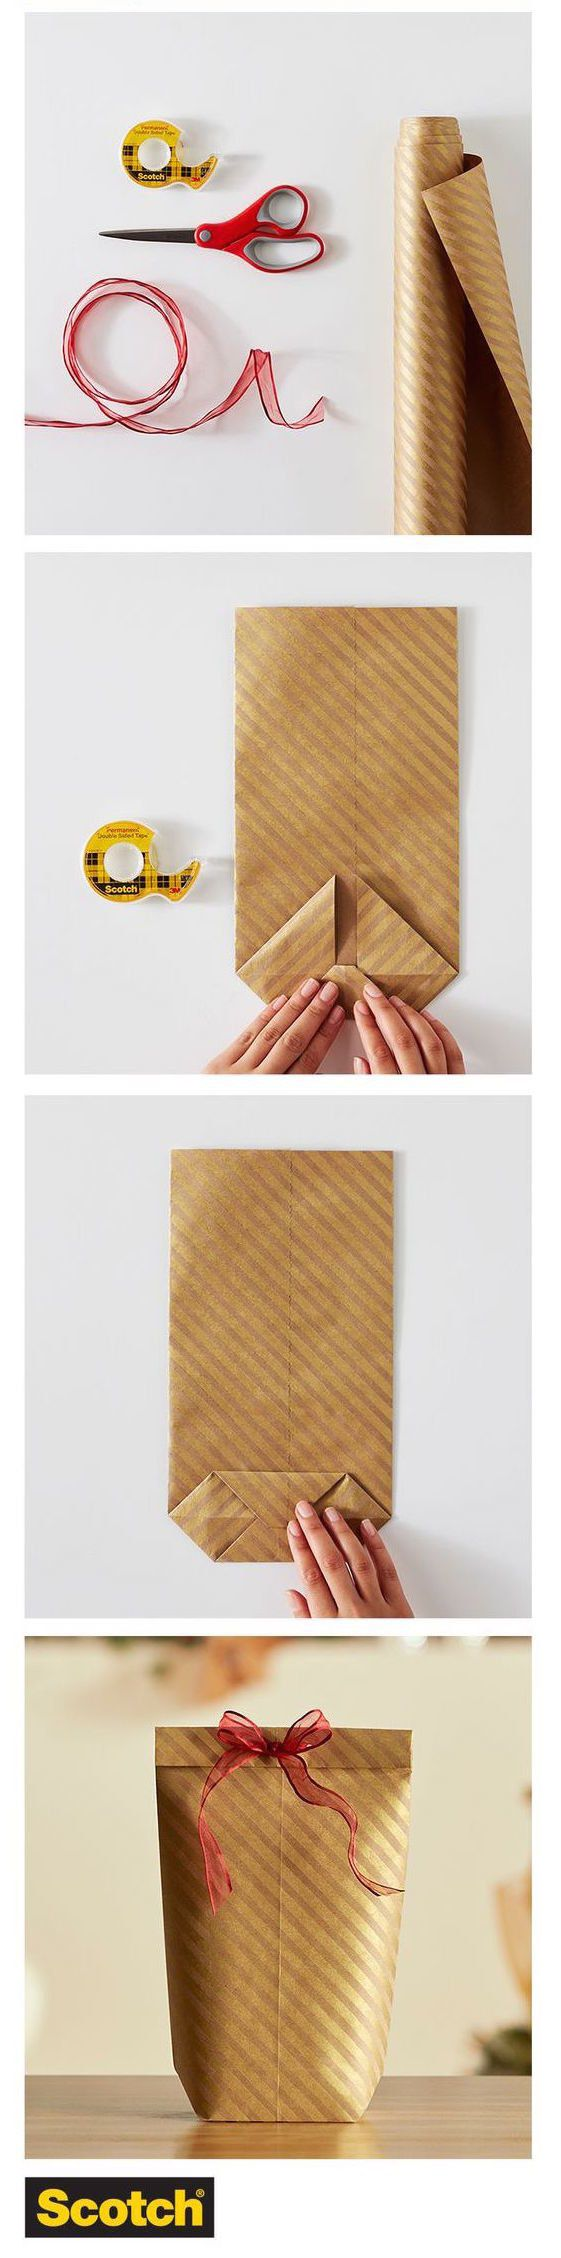 Best 25+ Paper gift bags ideas on Pinterest | DIY gift wrapping ...